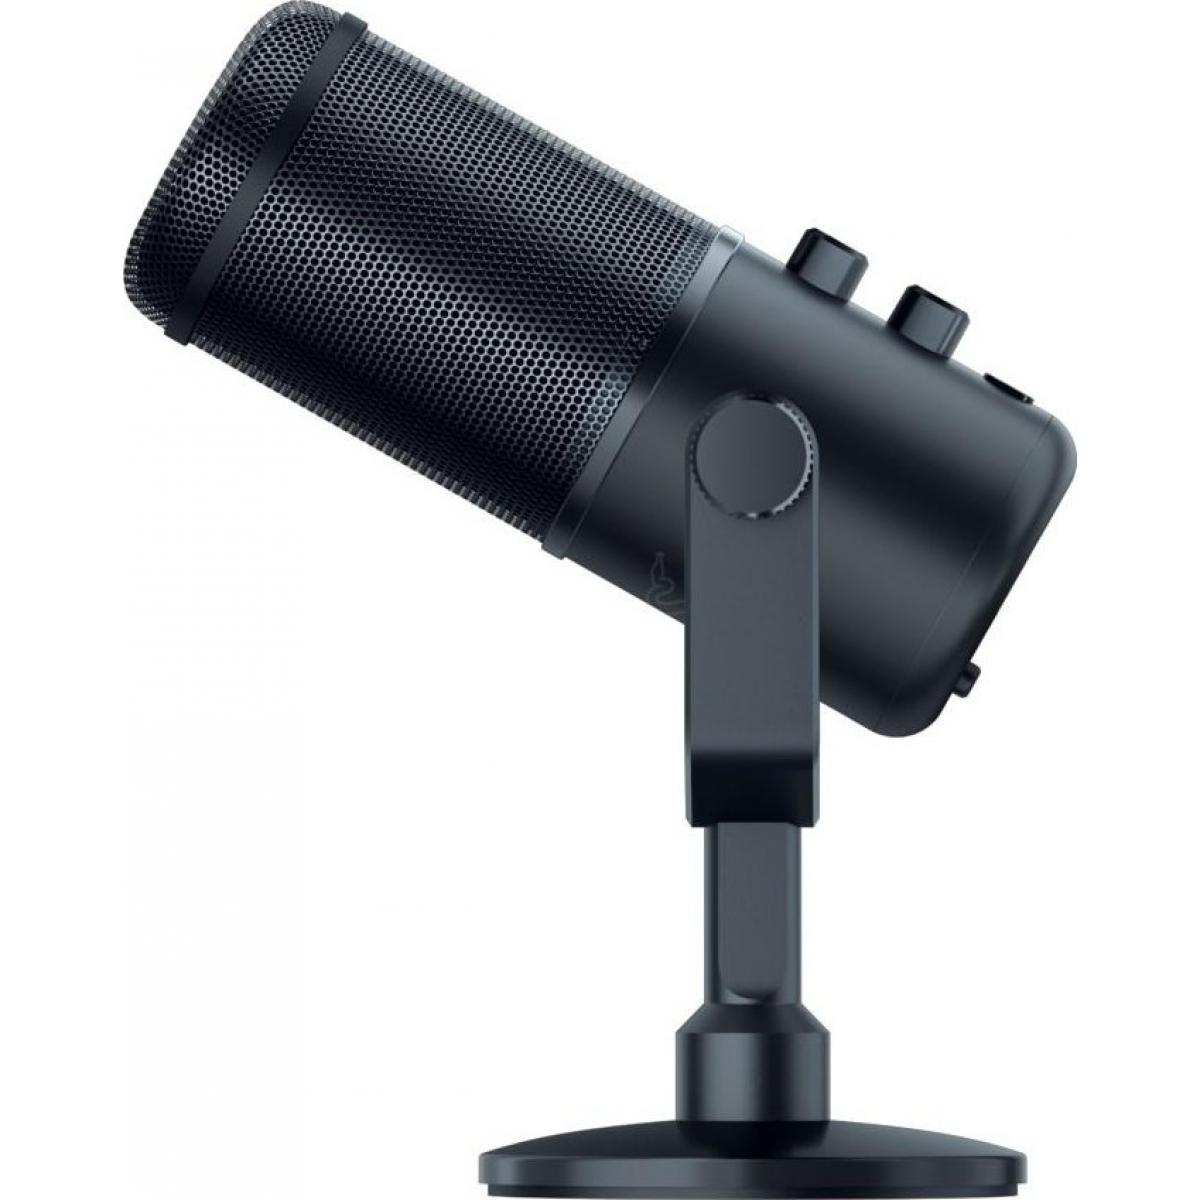 razer seiren professional streaming usb digital microphone rz19 02280100 r3m1 city center. Black Bedroom Furniture Sets. Home Design Ideas